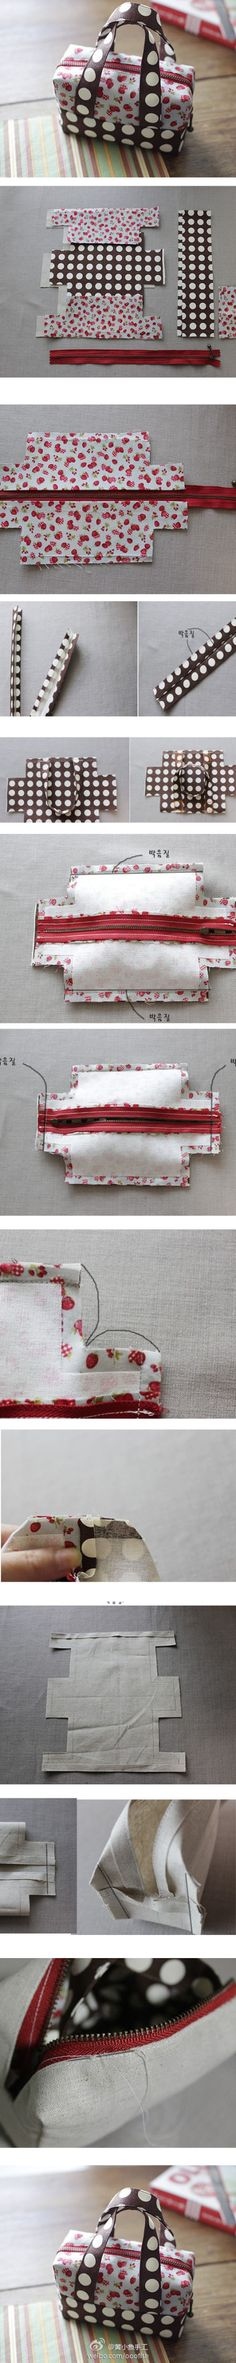 Cute bag! Tutorial